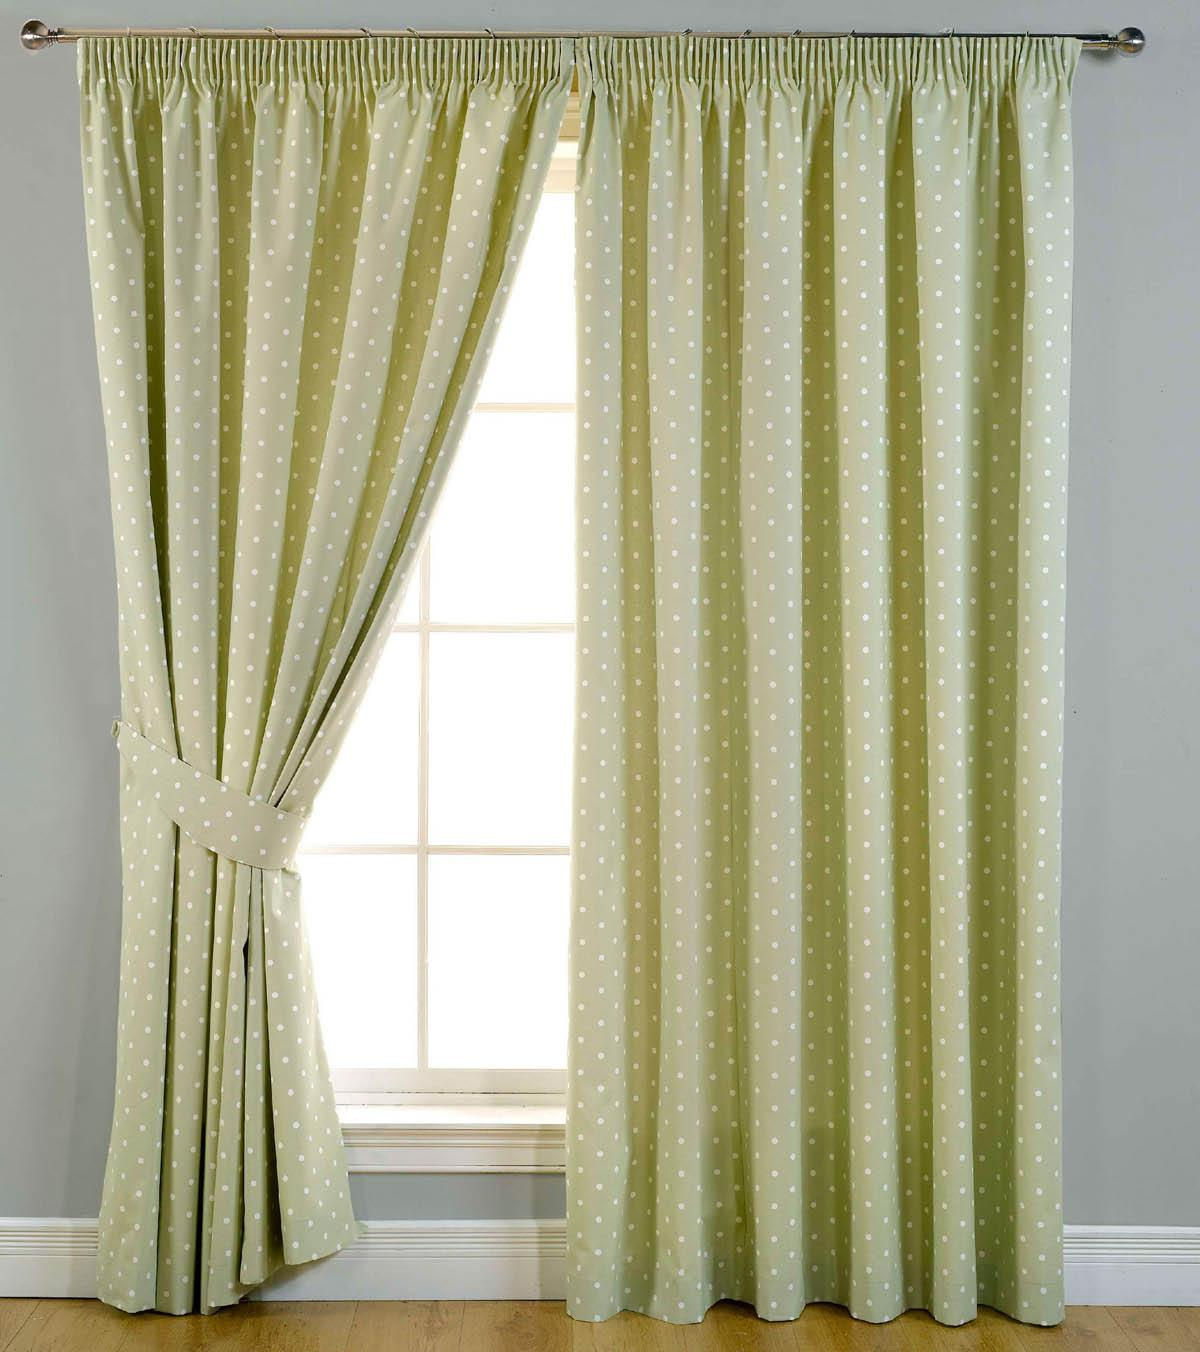 dotty pencil pleat ready made blackout curtains fully. Black Bedroom Furniture Sets. Home Design Ideas